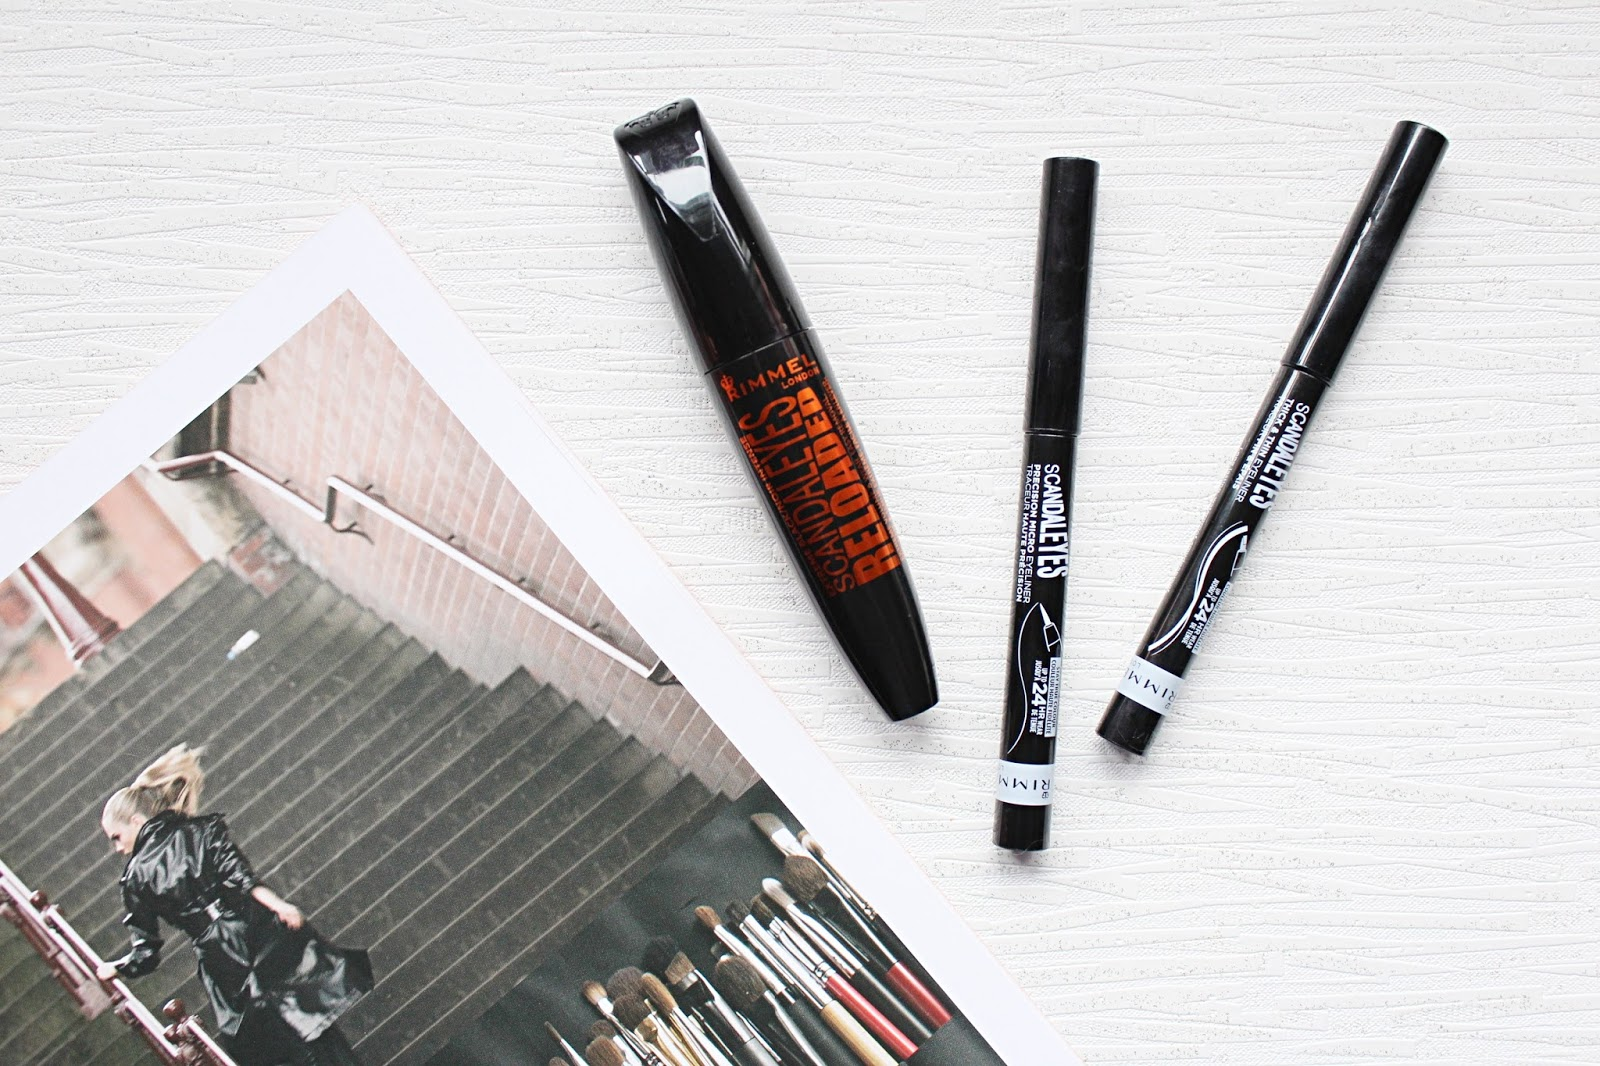 Rimmel London Scandaleyes Liners & Mascara